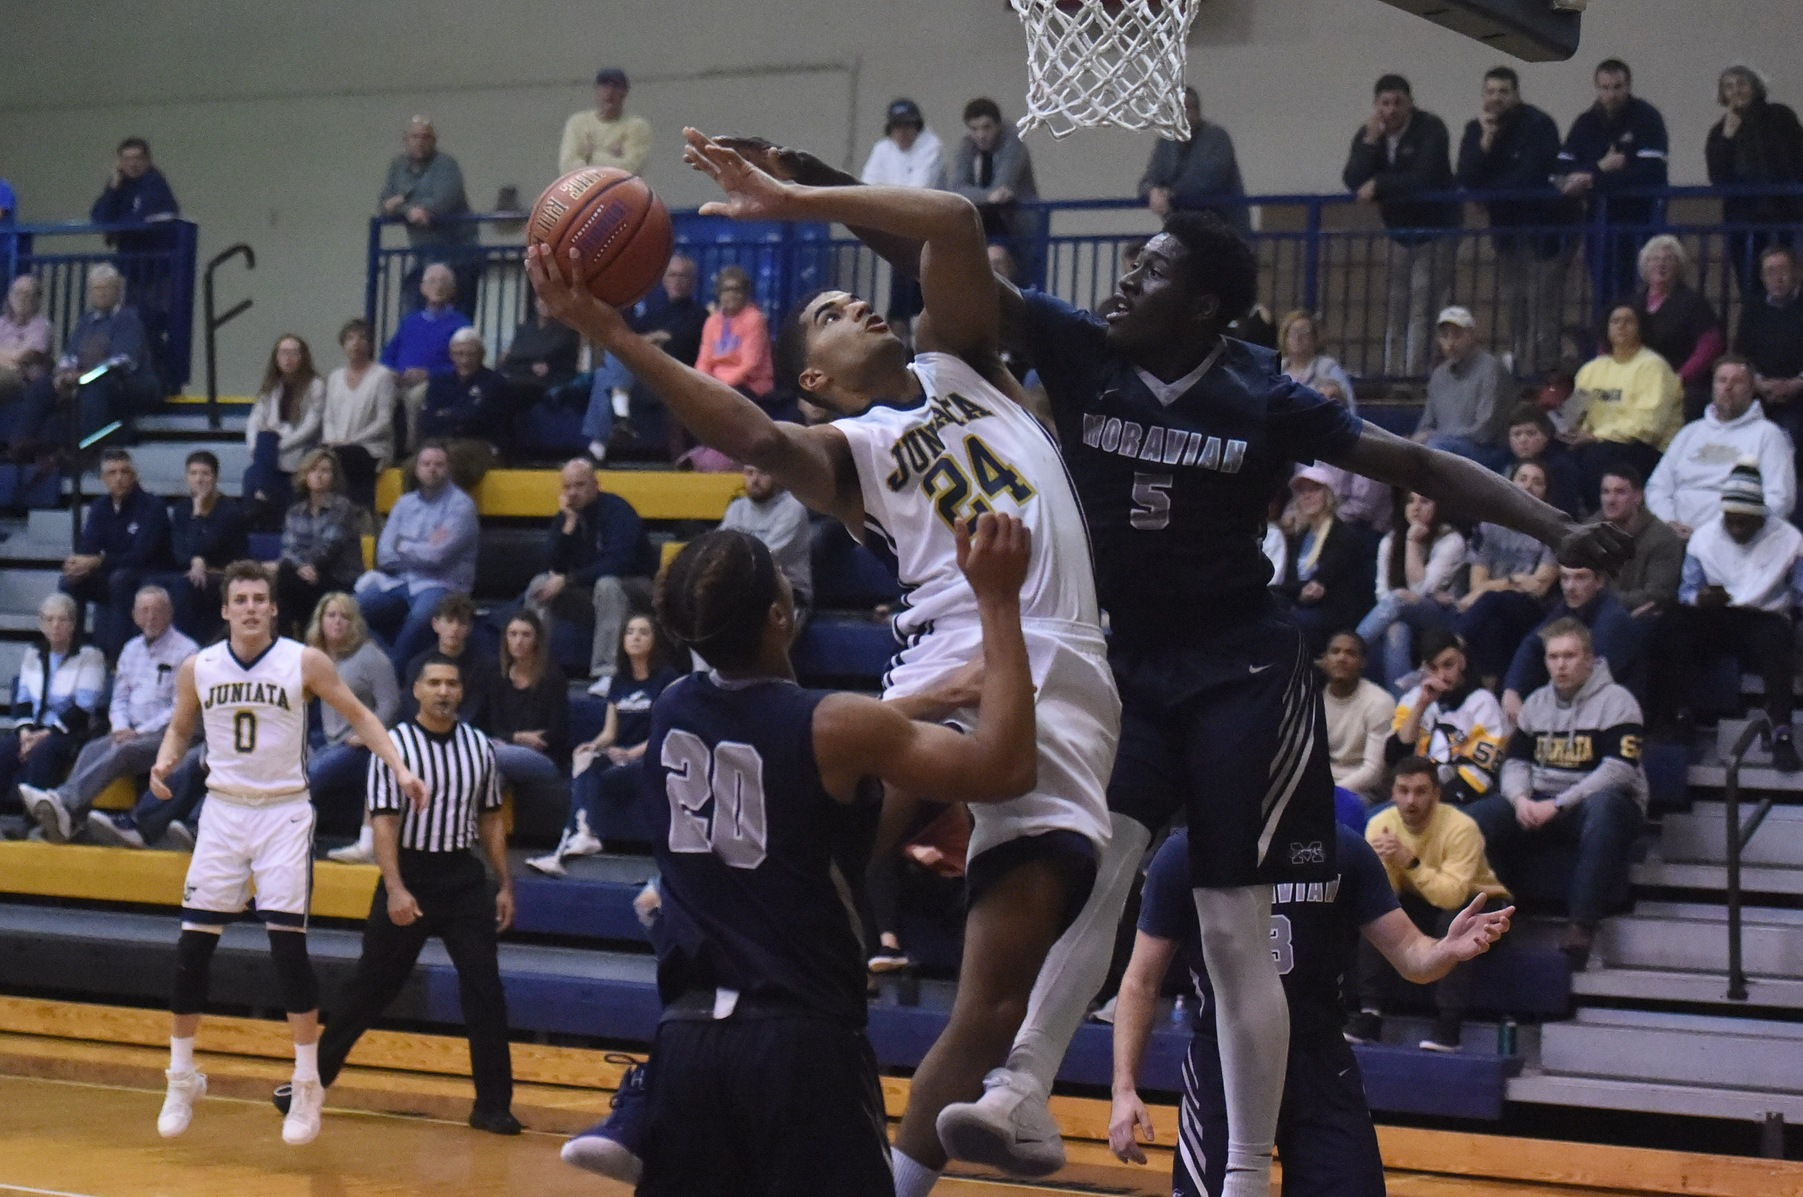 Marcus Lee scores two of his 17 points against Moravian.